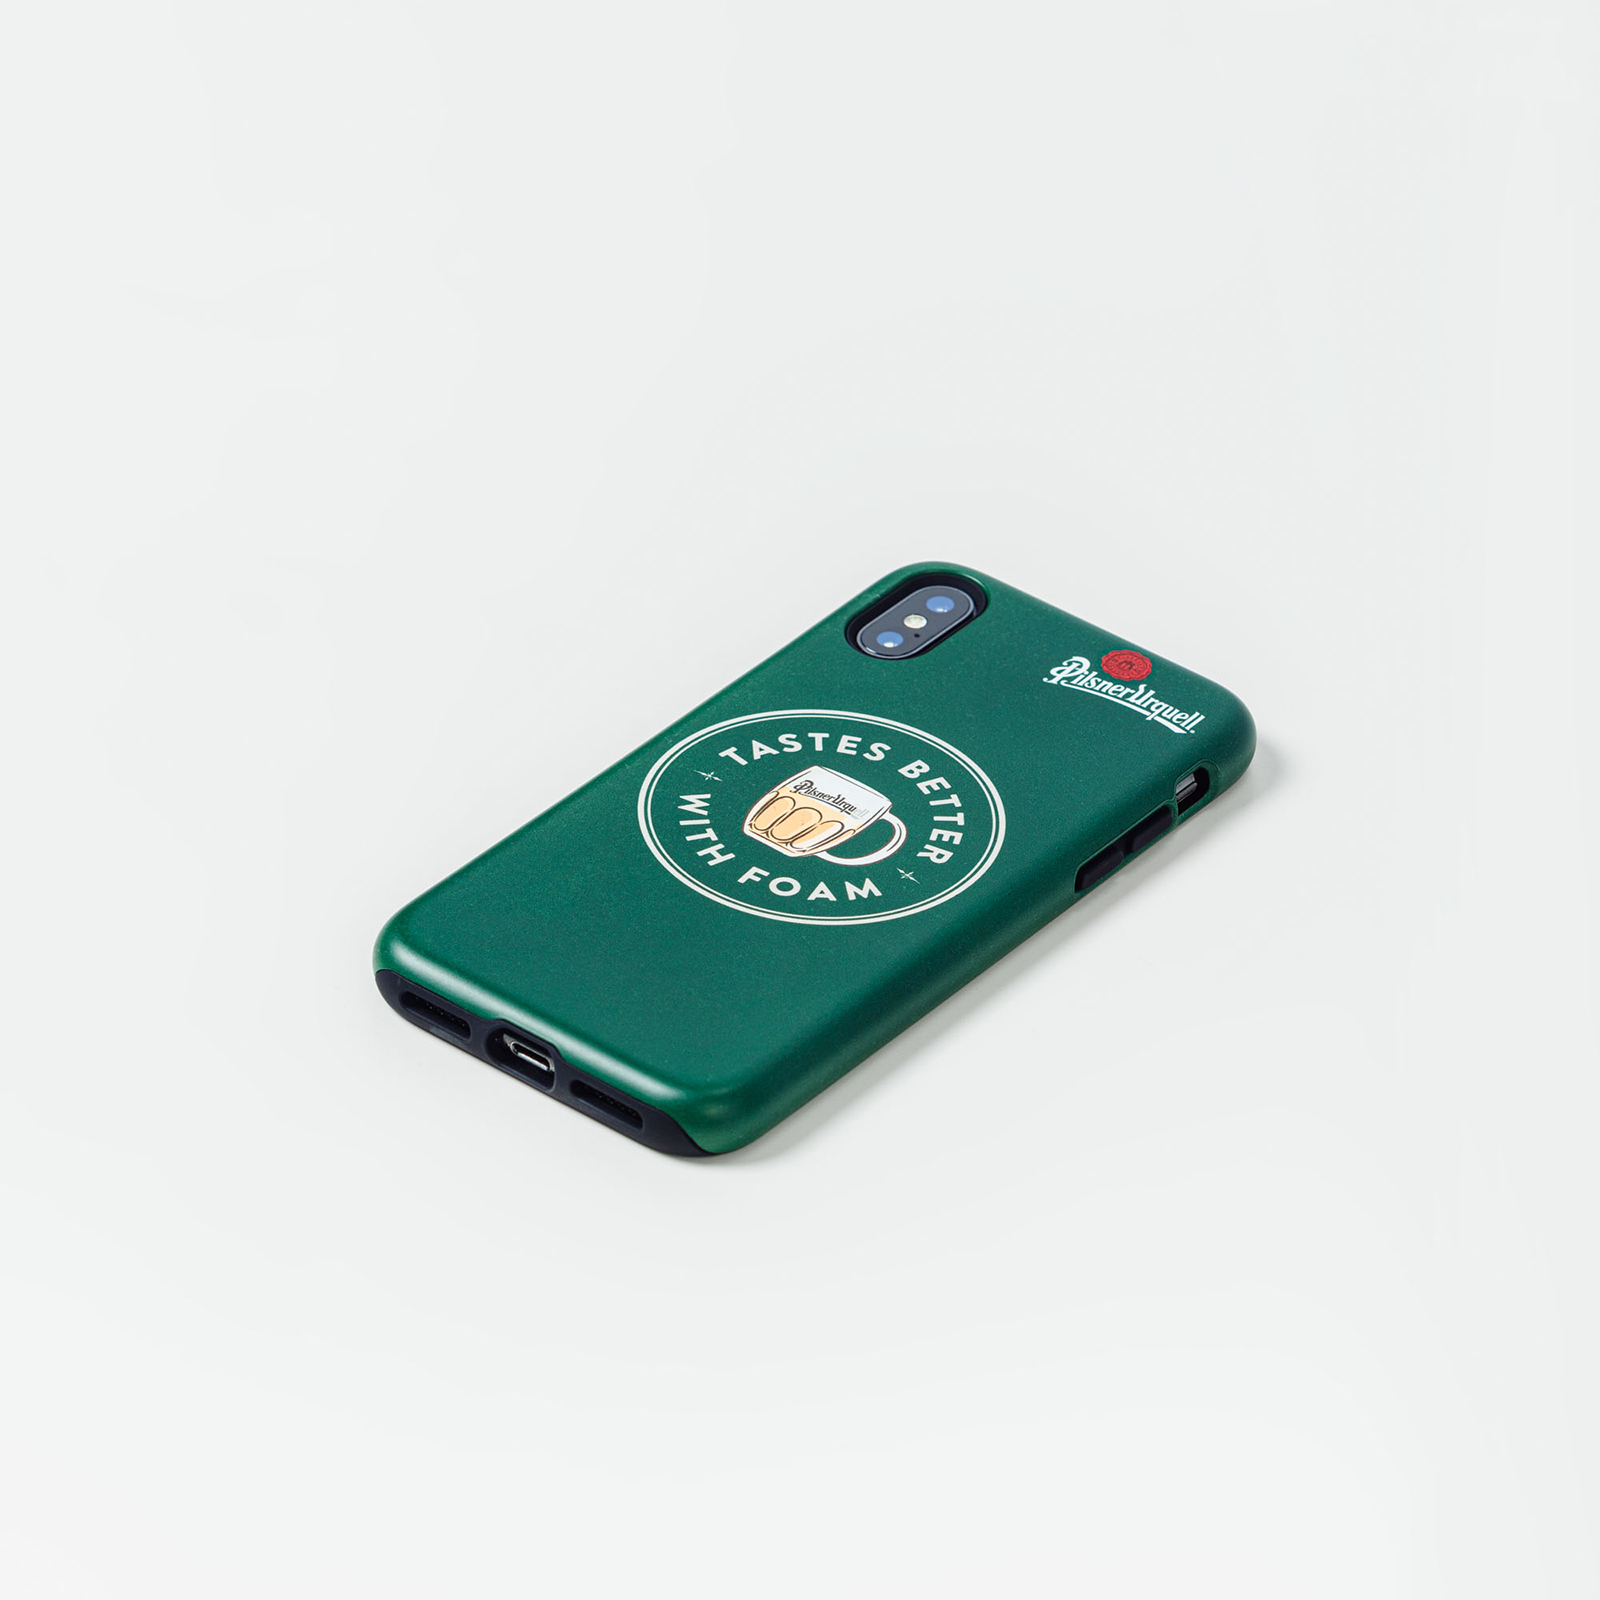 Pilsner Urquell SNAP mobile phone case - green